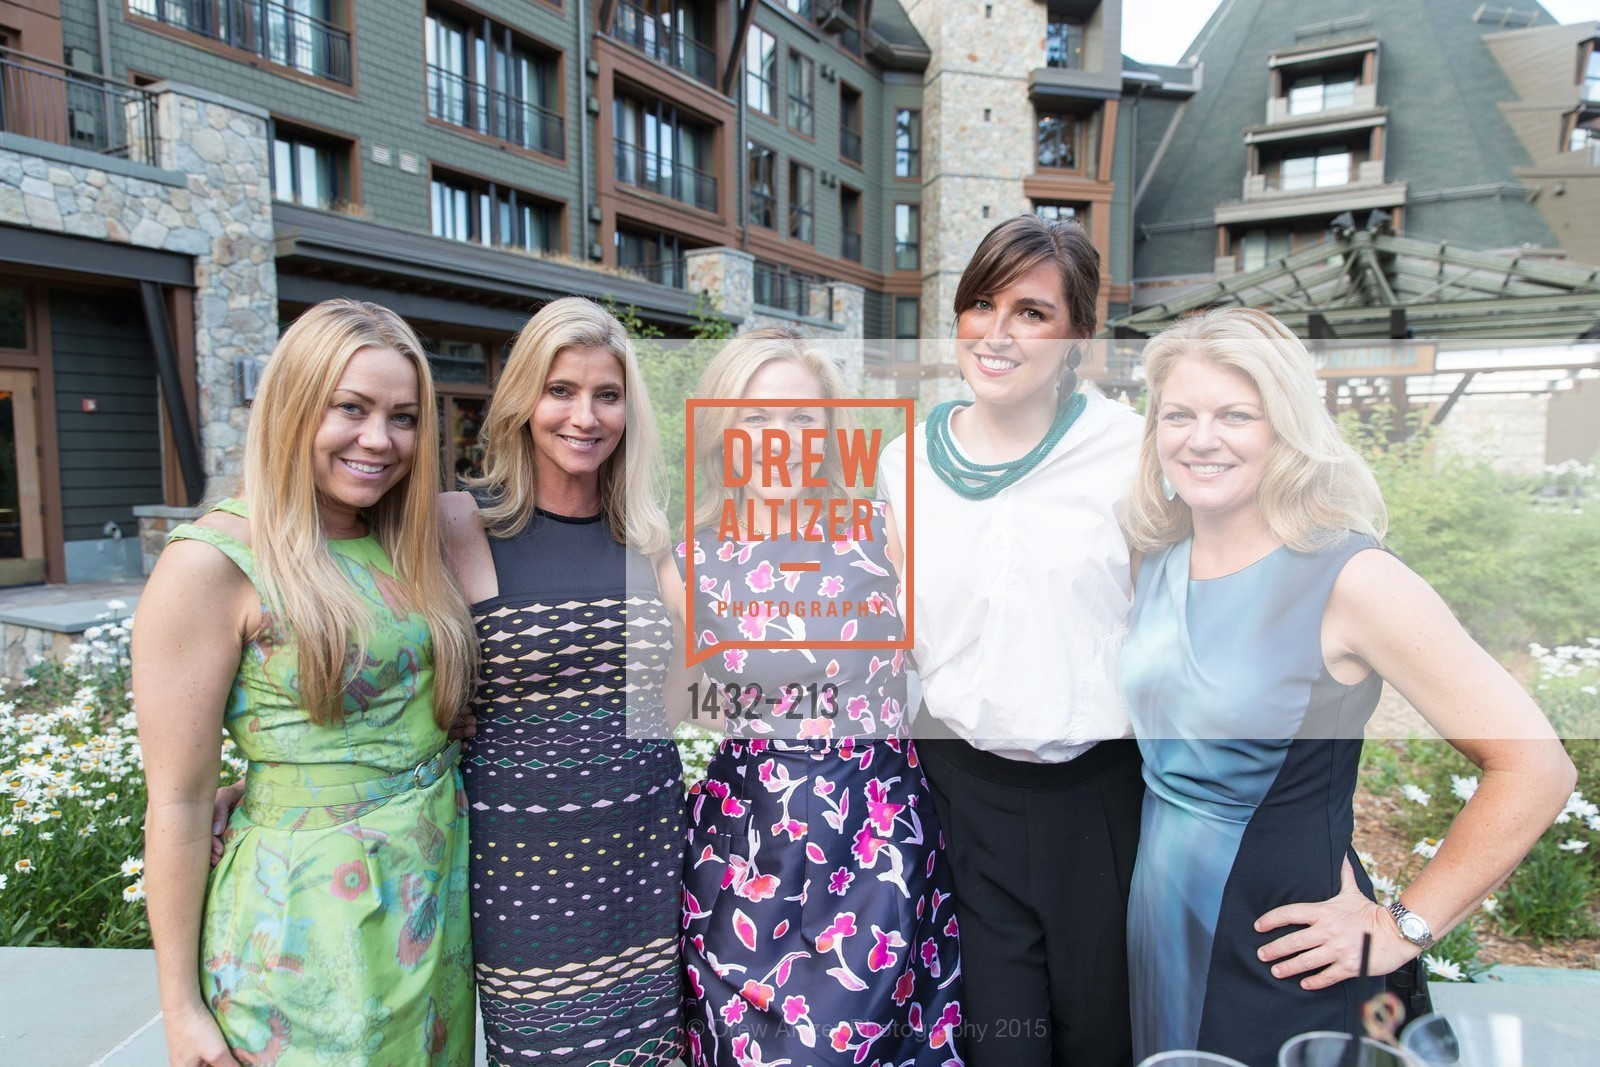 Heidi Bertagnolli, Jeanine Rogers, Darayn Hickingbotham, Justine Macfee, Tammy Pioch, League to Save Lake Tahoe Sponsor Cocktail Party, Ritz-Carlton, Lake Tahoe, July 31st, 2015,Drew Altizer, Drew Altizer Photography, full-service agency, private events, San Francisco photographer, photographer california